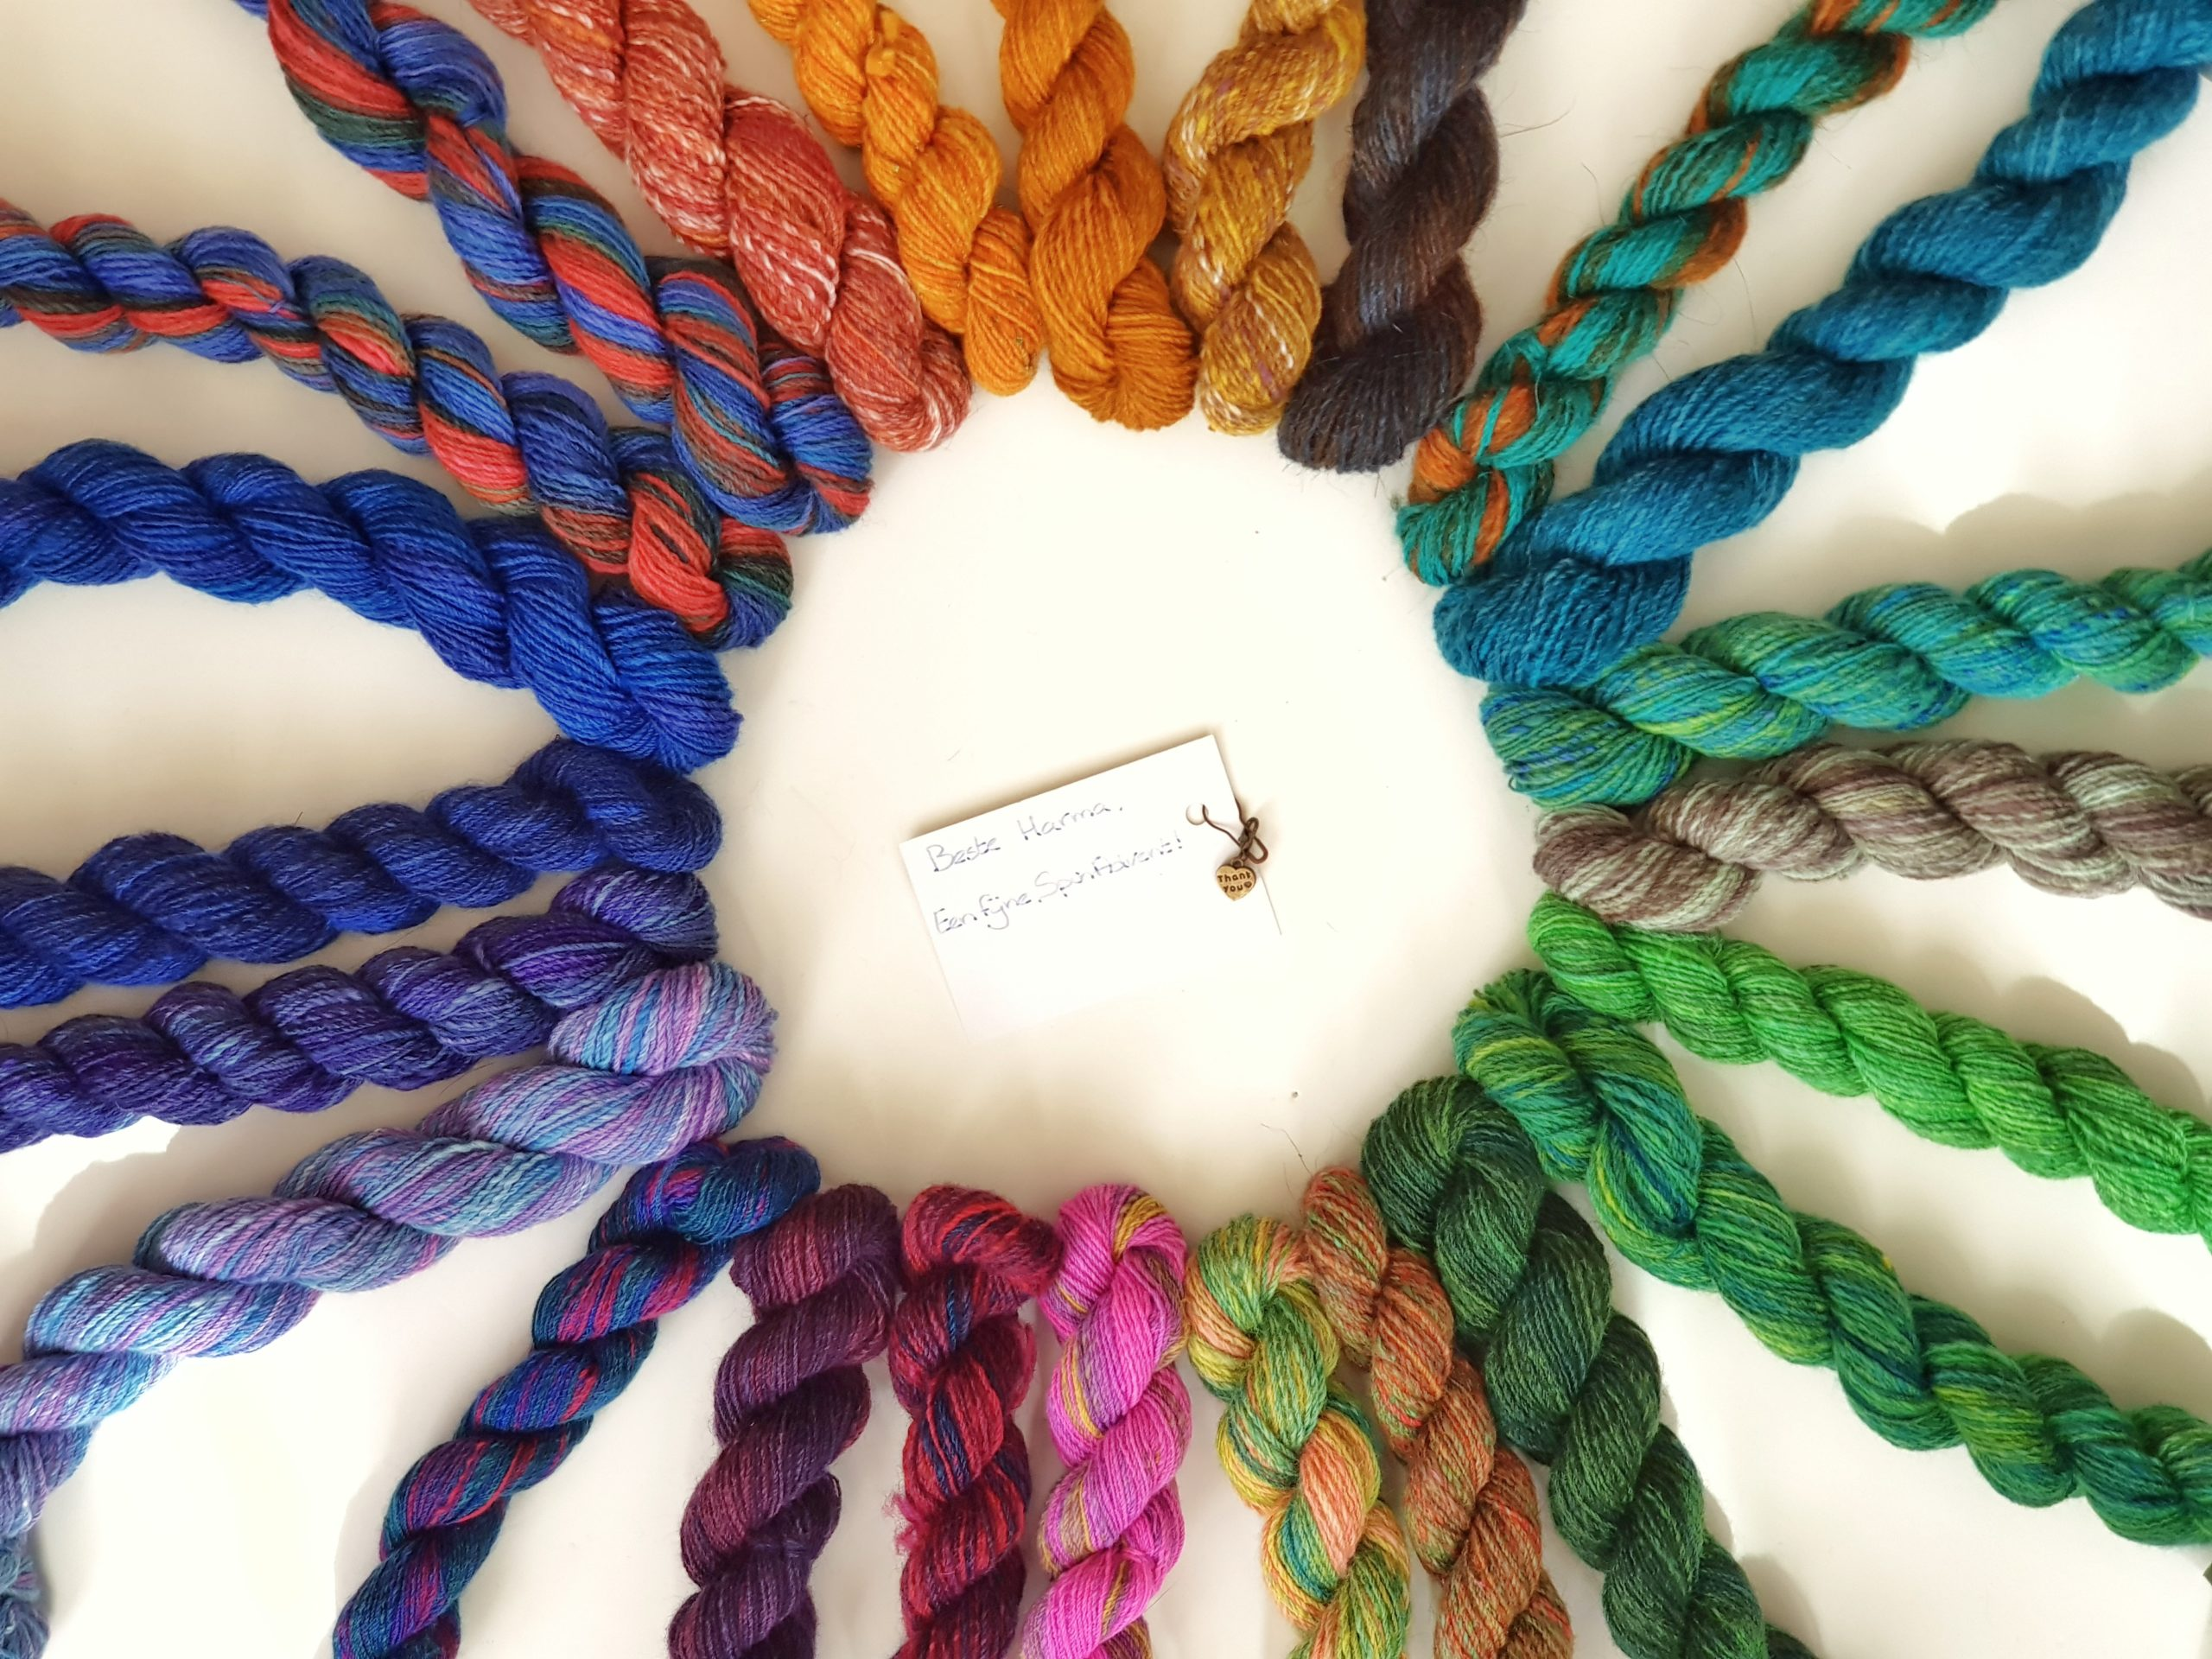 24 mini skeins of yarn in all colours of the rainbow, arranged in a circle